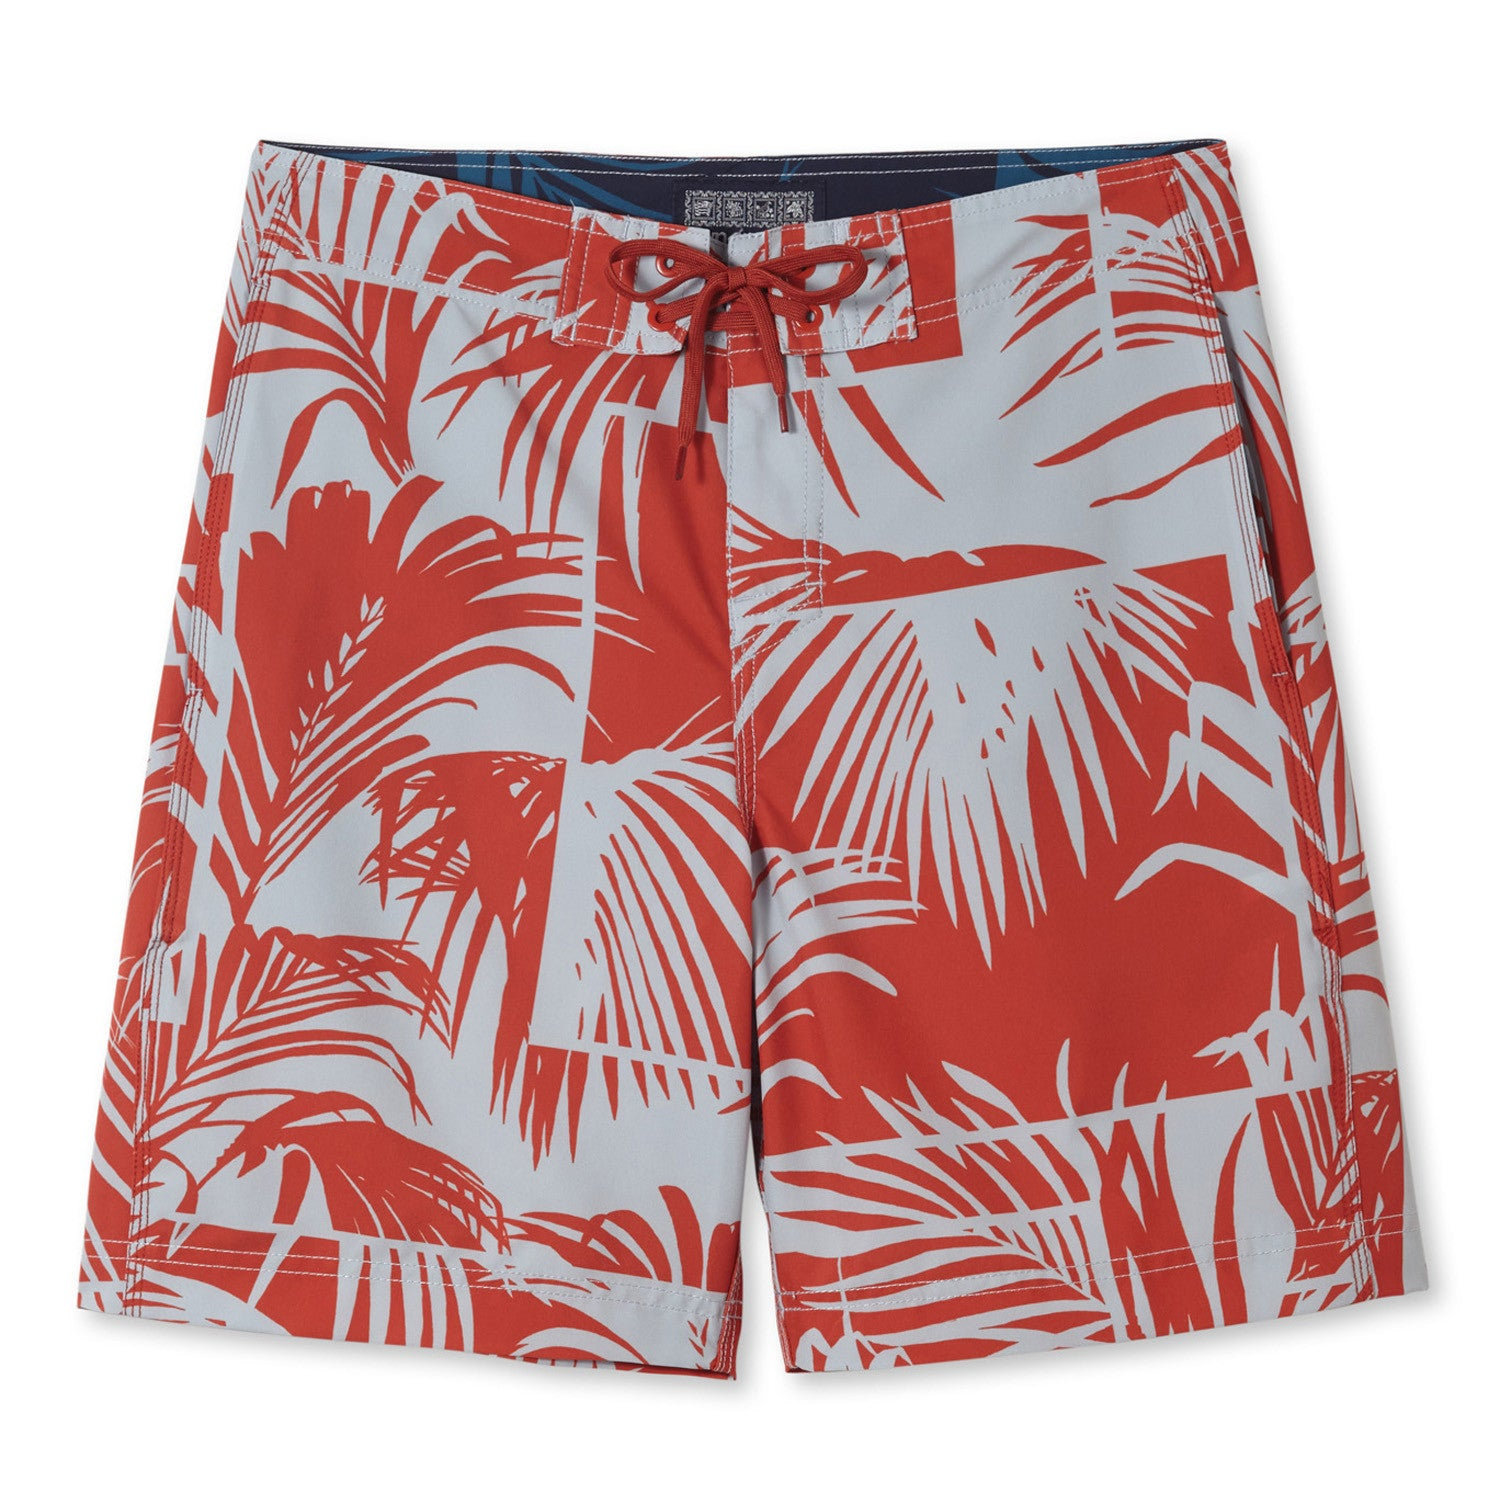 PALM VIEW / 4-WAY STRETCH BOARDSHORTS • 8 INCH INSEAM - Zoomed